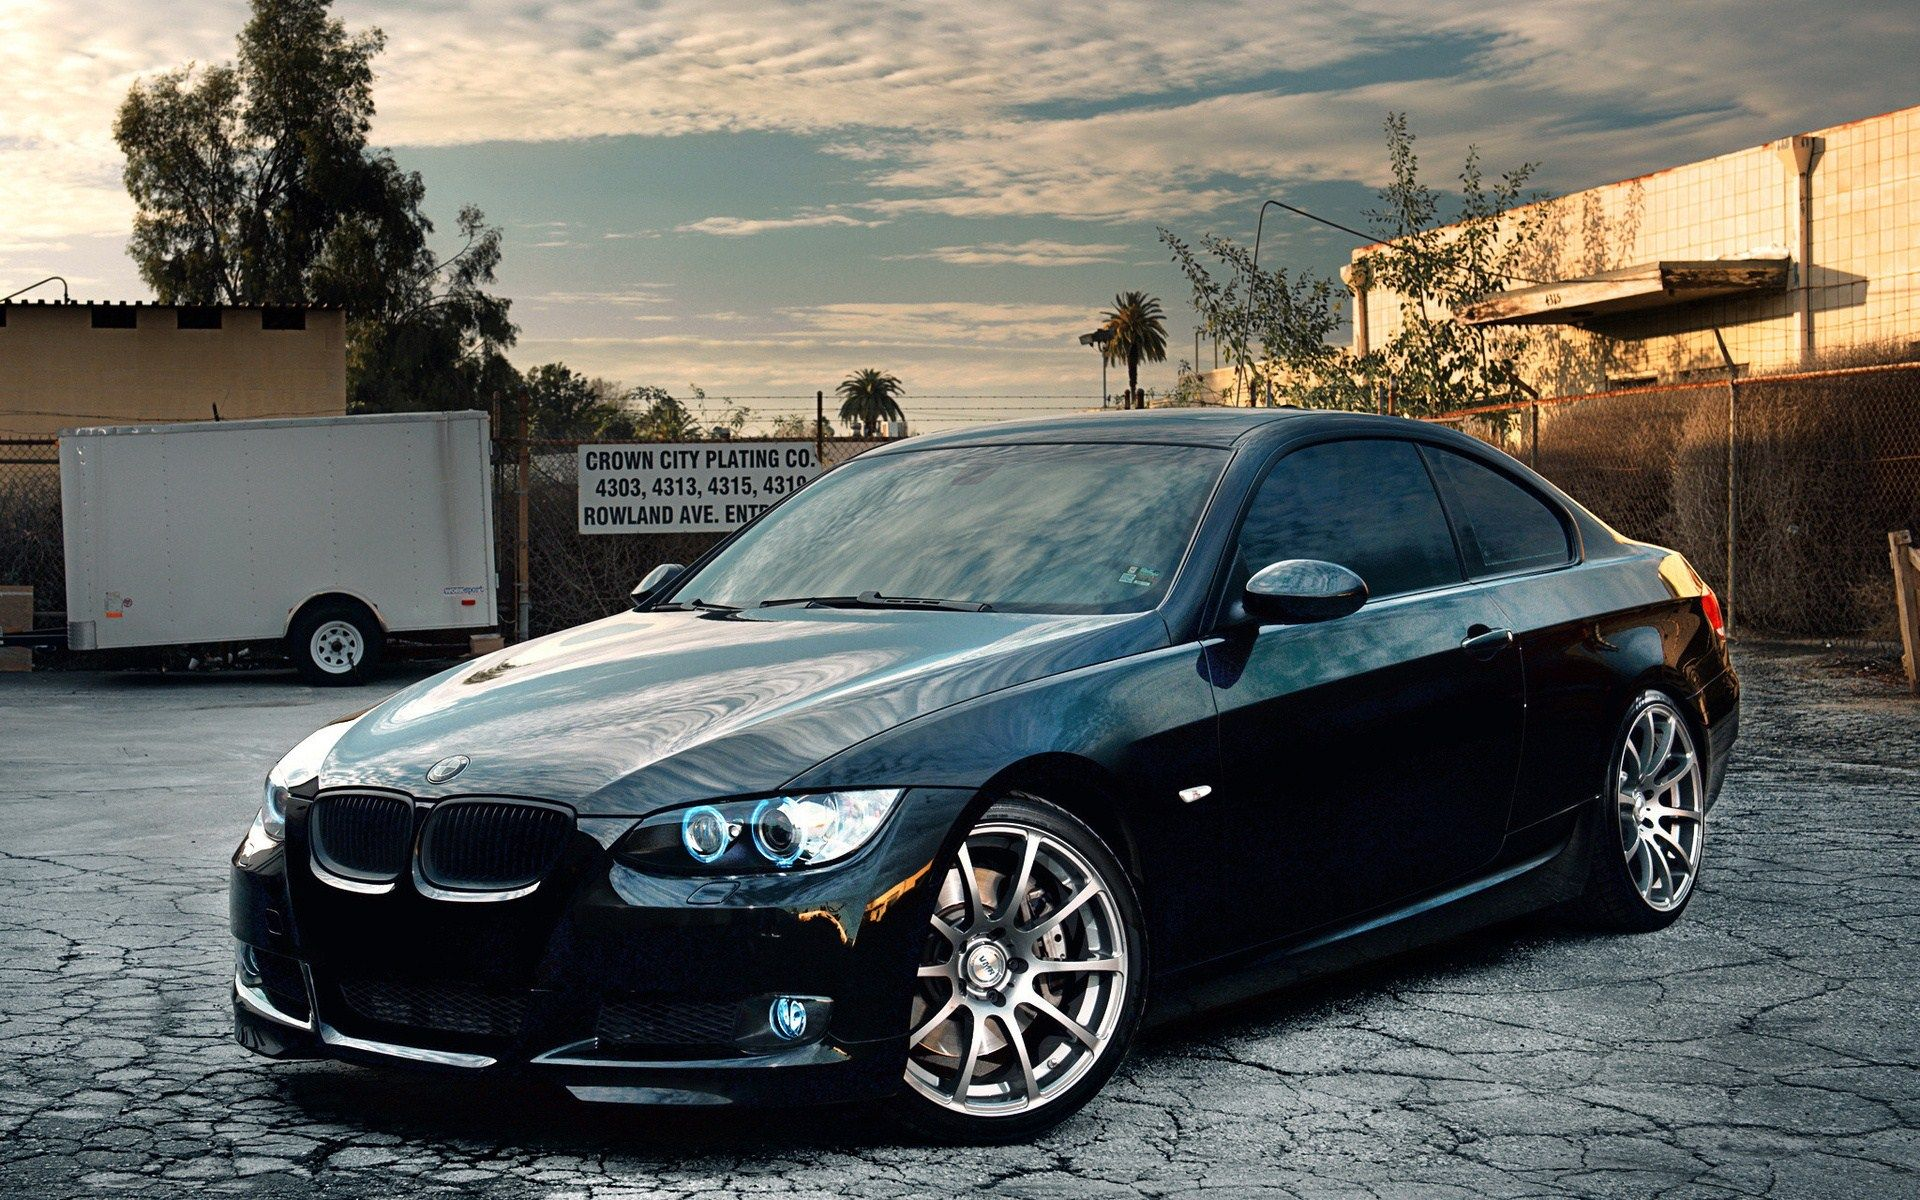 BMW I Coupe Wallpaper Cars Pinterest BMW Wallpaper And - 2014 bmw 335i coupe